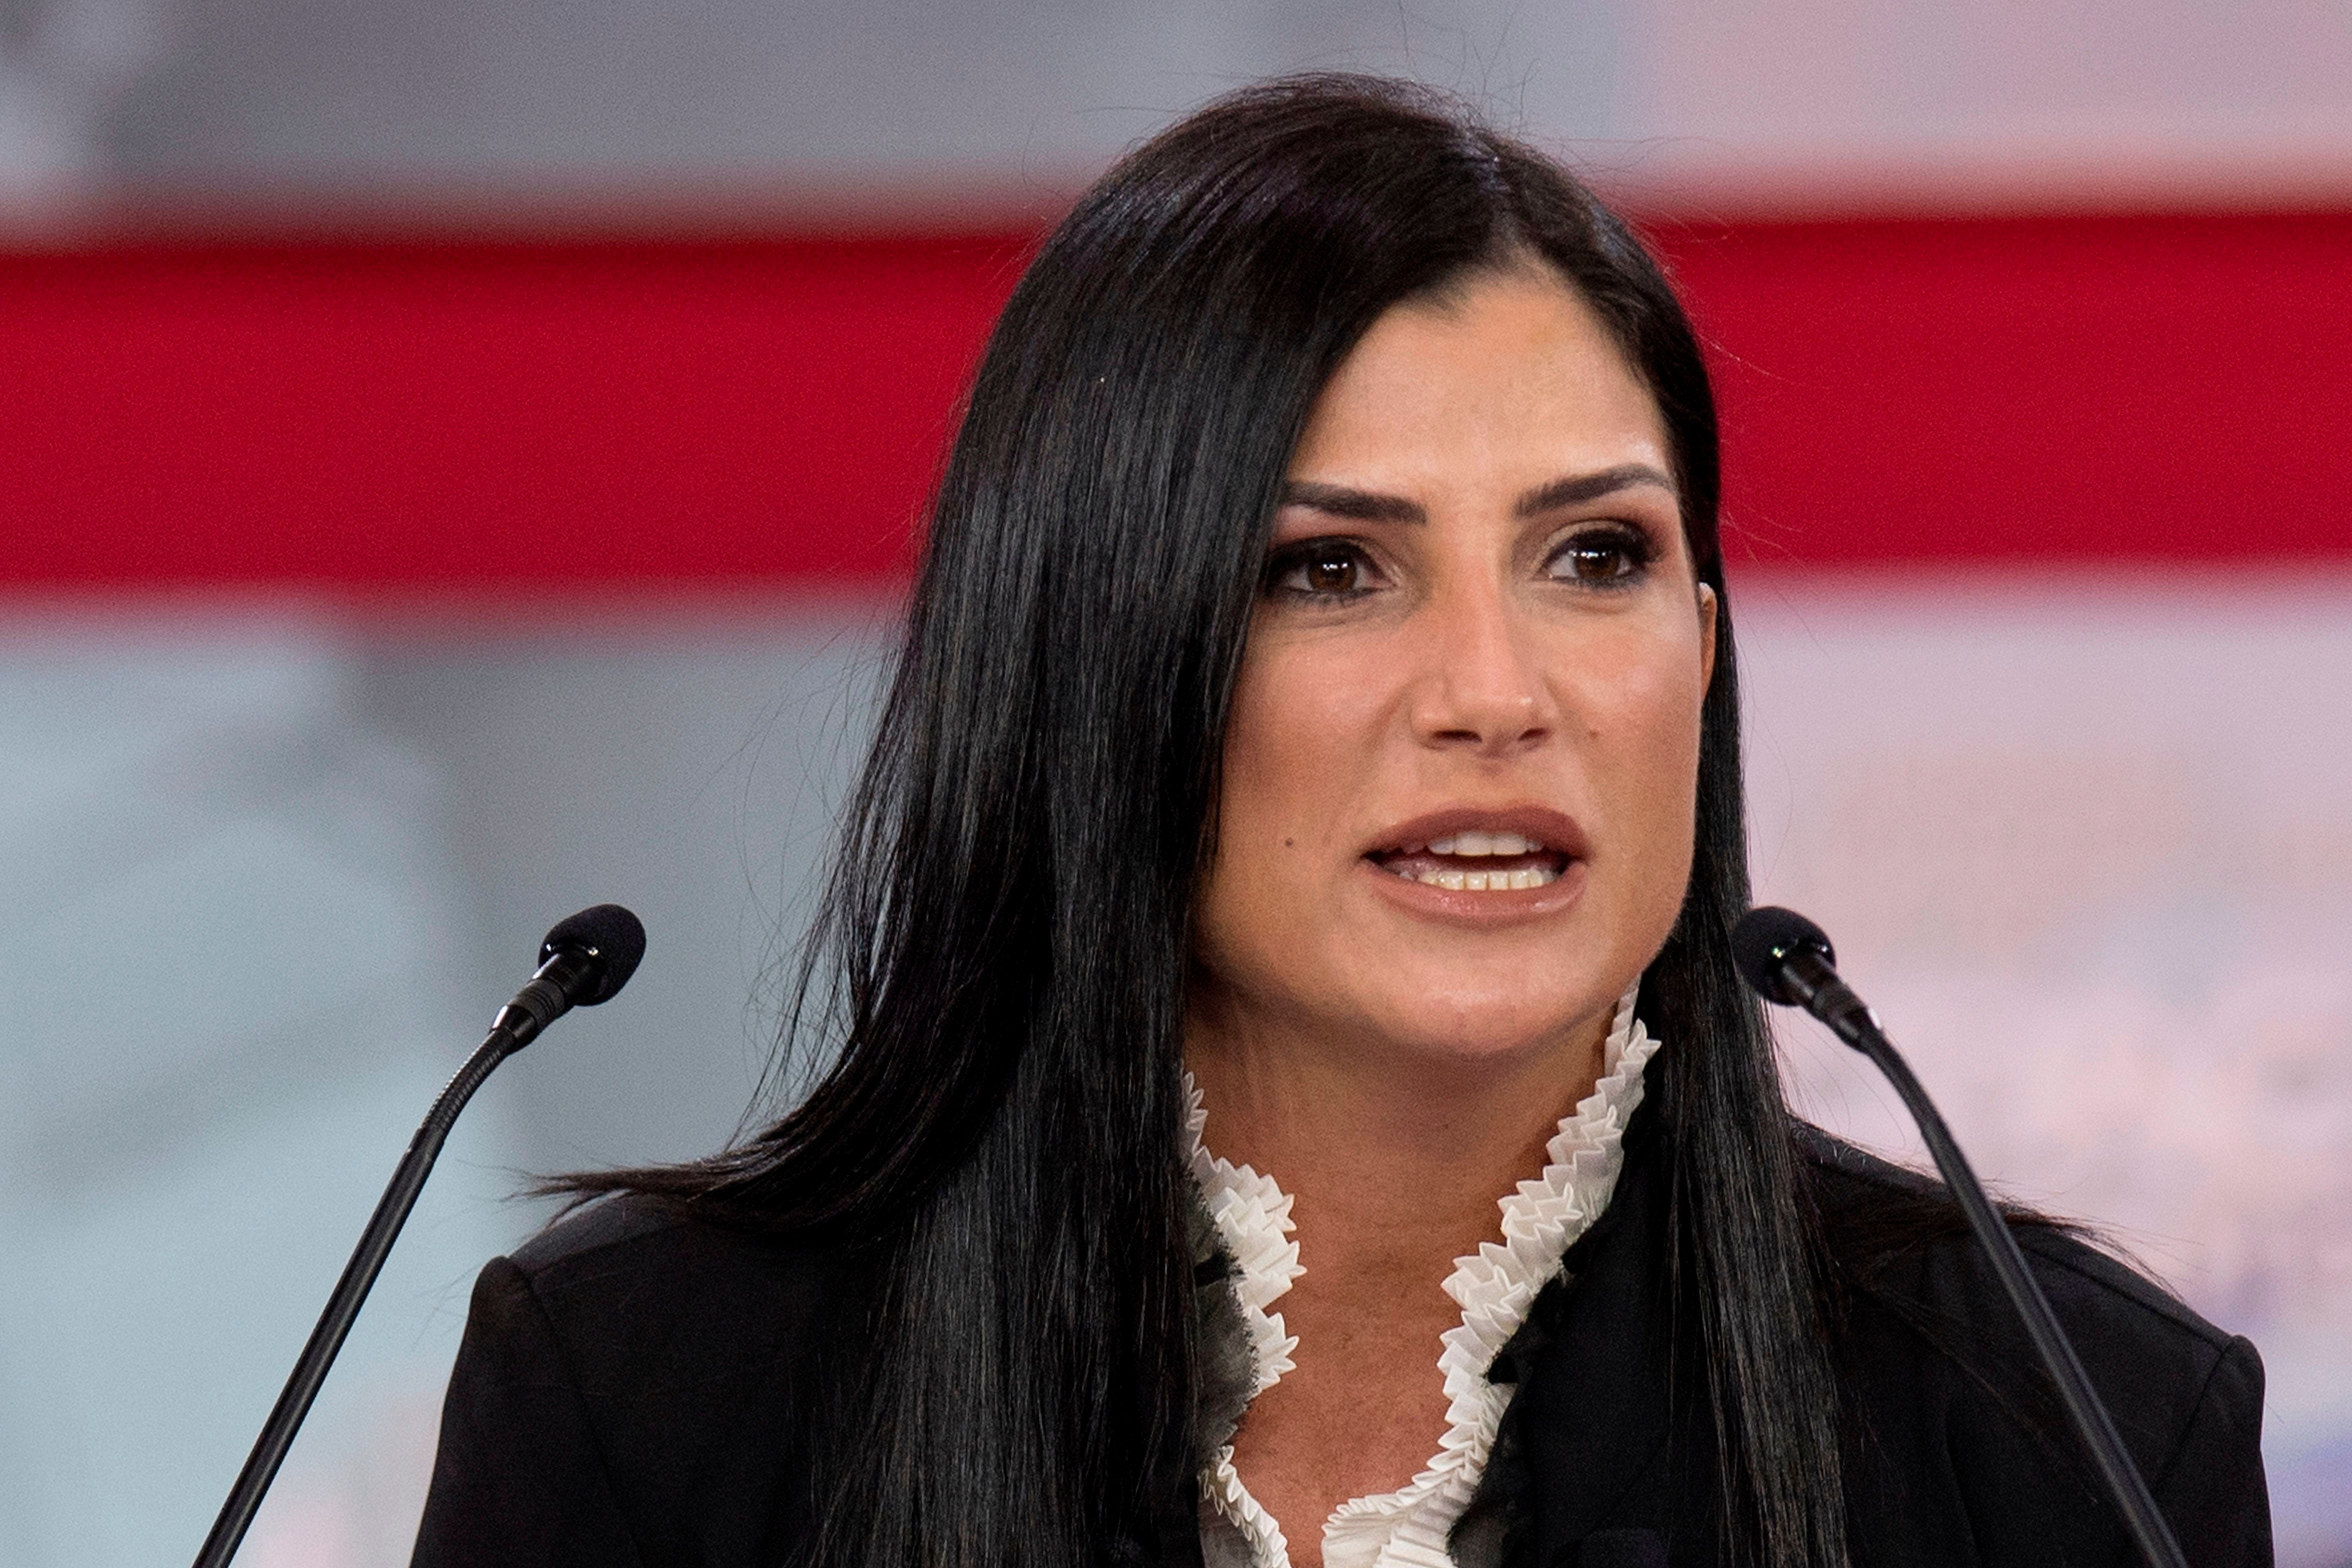 Spokesperson for the National Rifle Association (NRA) Dana Loesch speaks during the 2018 Conservative Political Action Conference at National Harbor in Oxon Hill, Maryland on February 22, 2018. / AFP PHOTO / JIM WATSON        (Photo credit should read JIM WATSON/AFP/Getty Images)